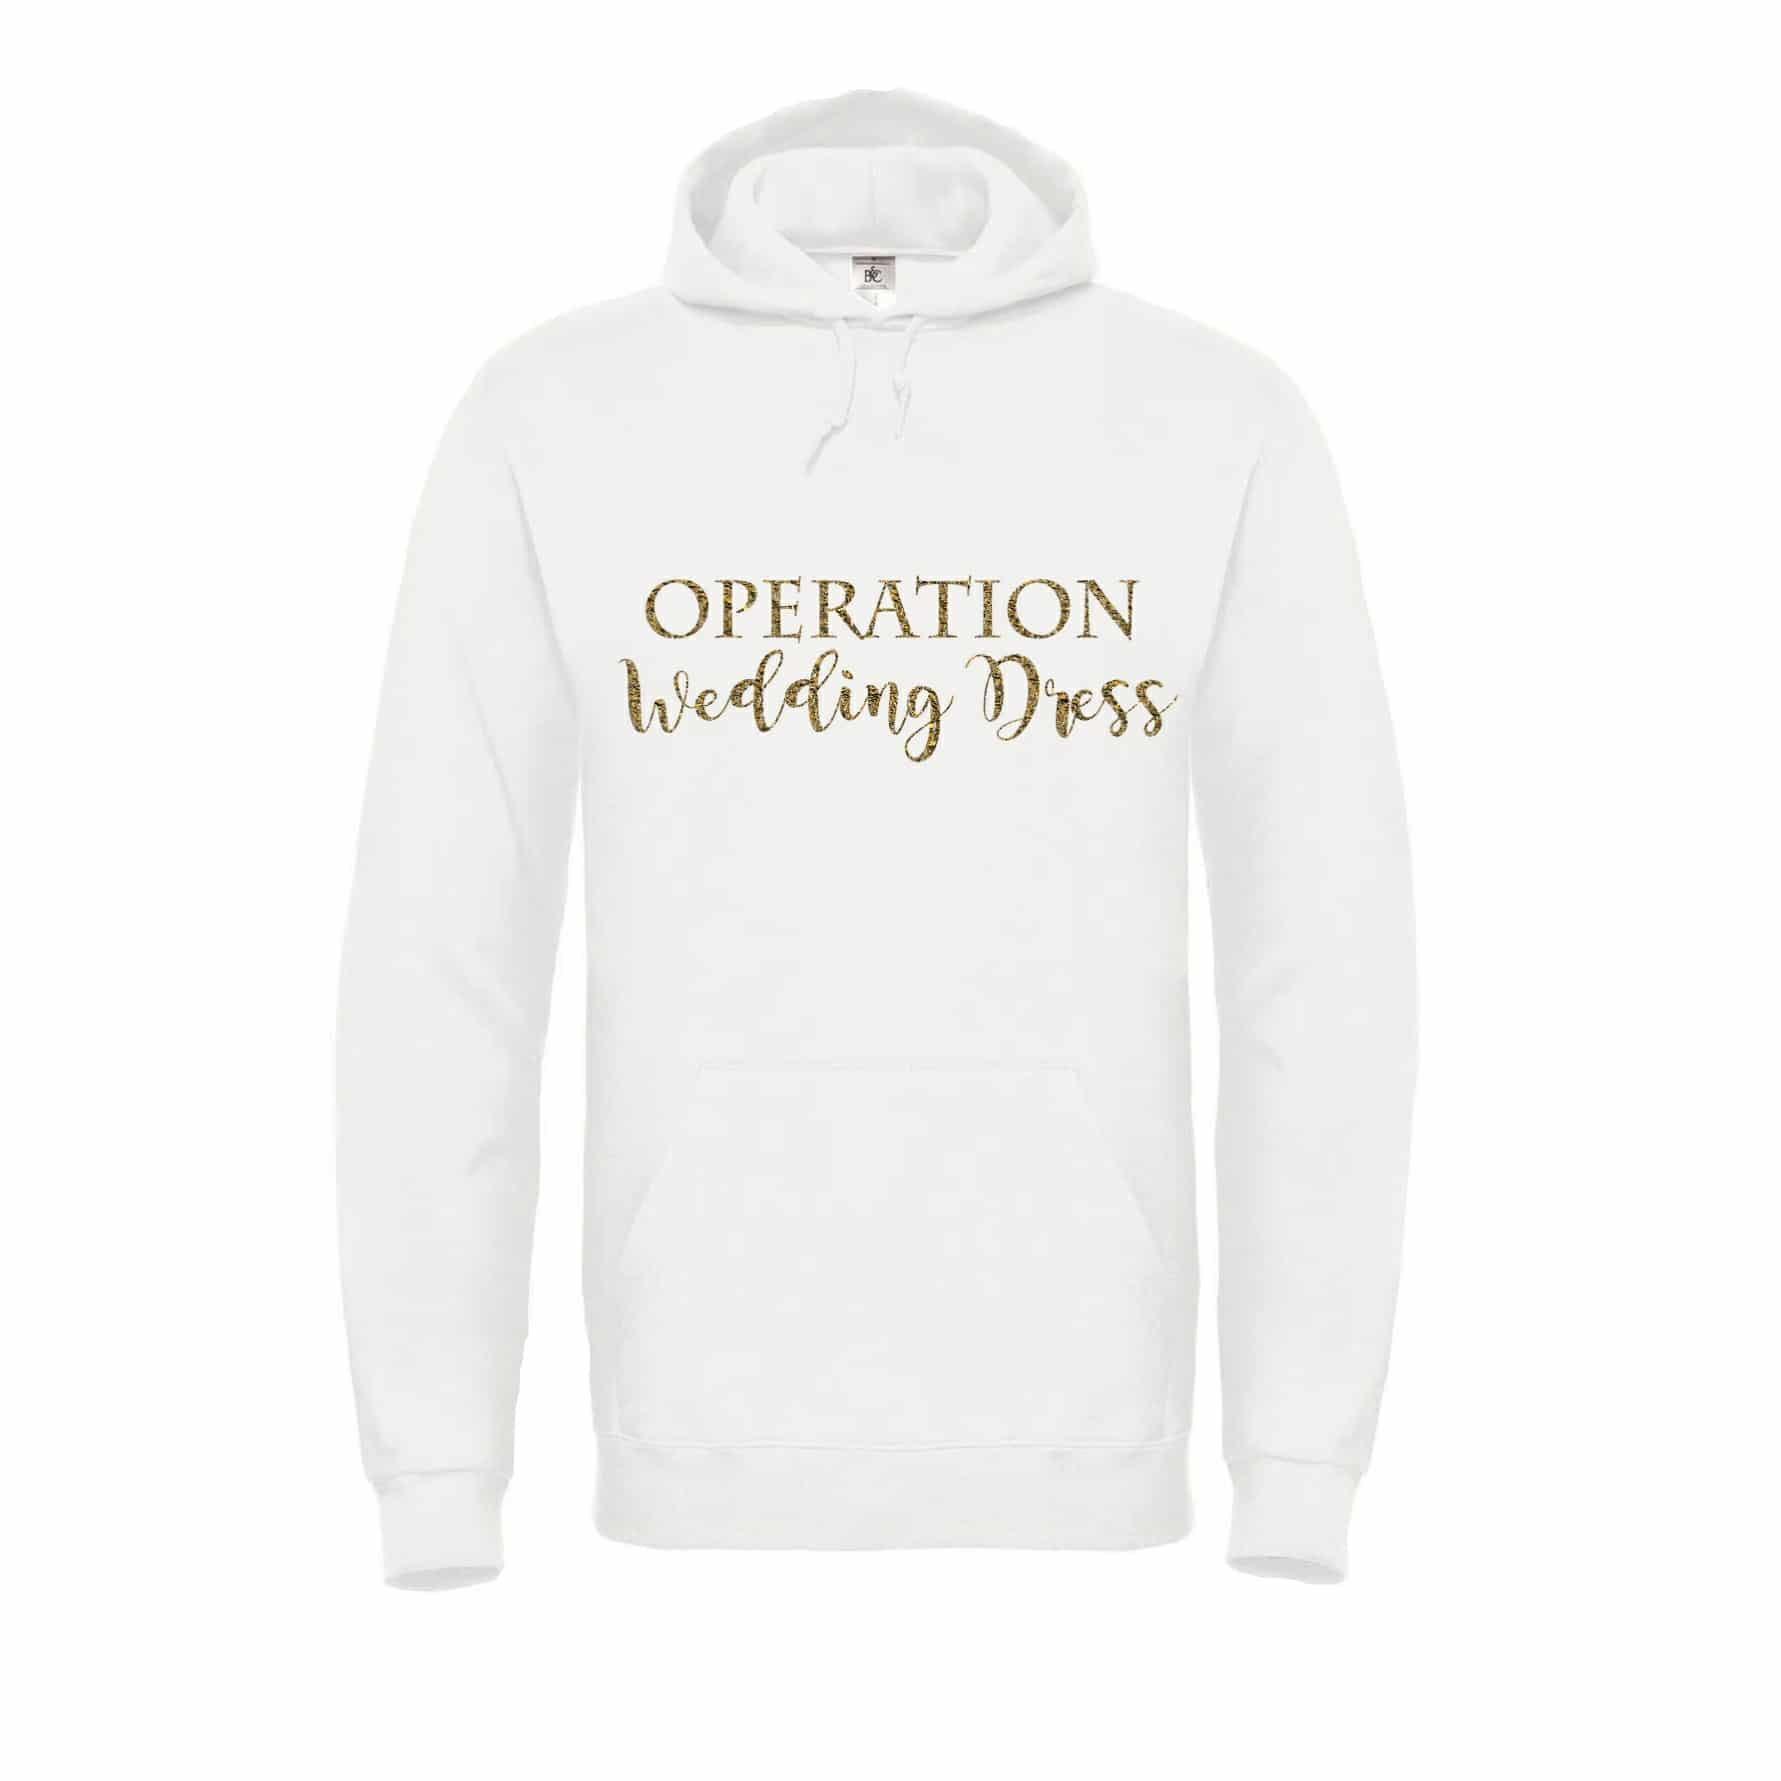 Operation wedding dress Hoodie